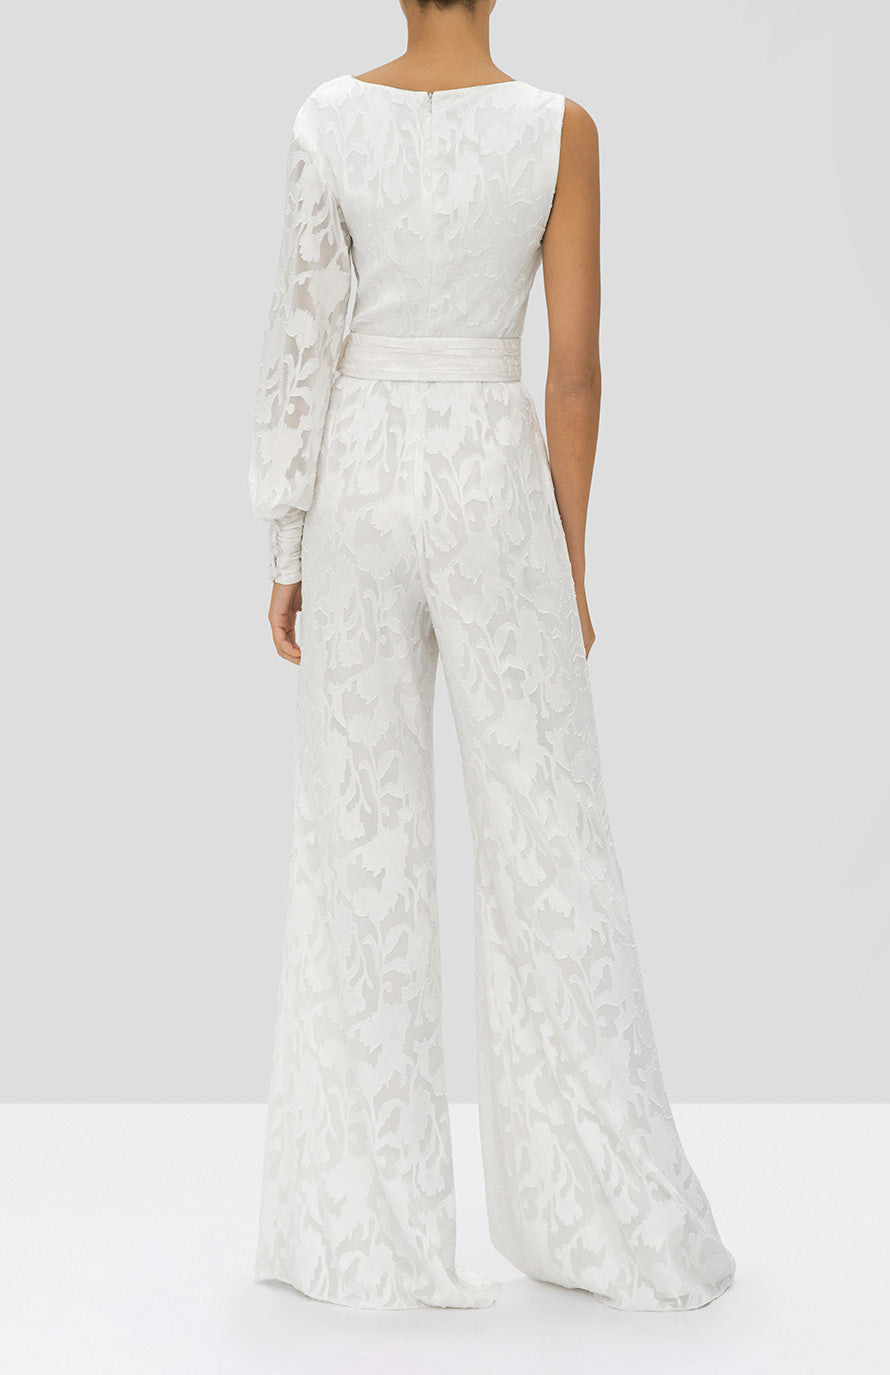 Alexis Berezzi Jumpsuit in Ivory Floral from the Holiday 2019 Ready To Wear Collection - Rear View